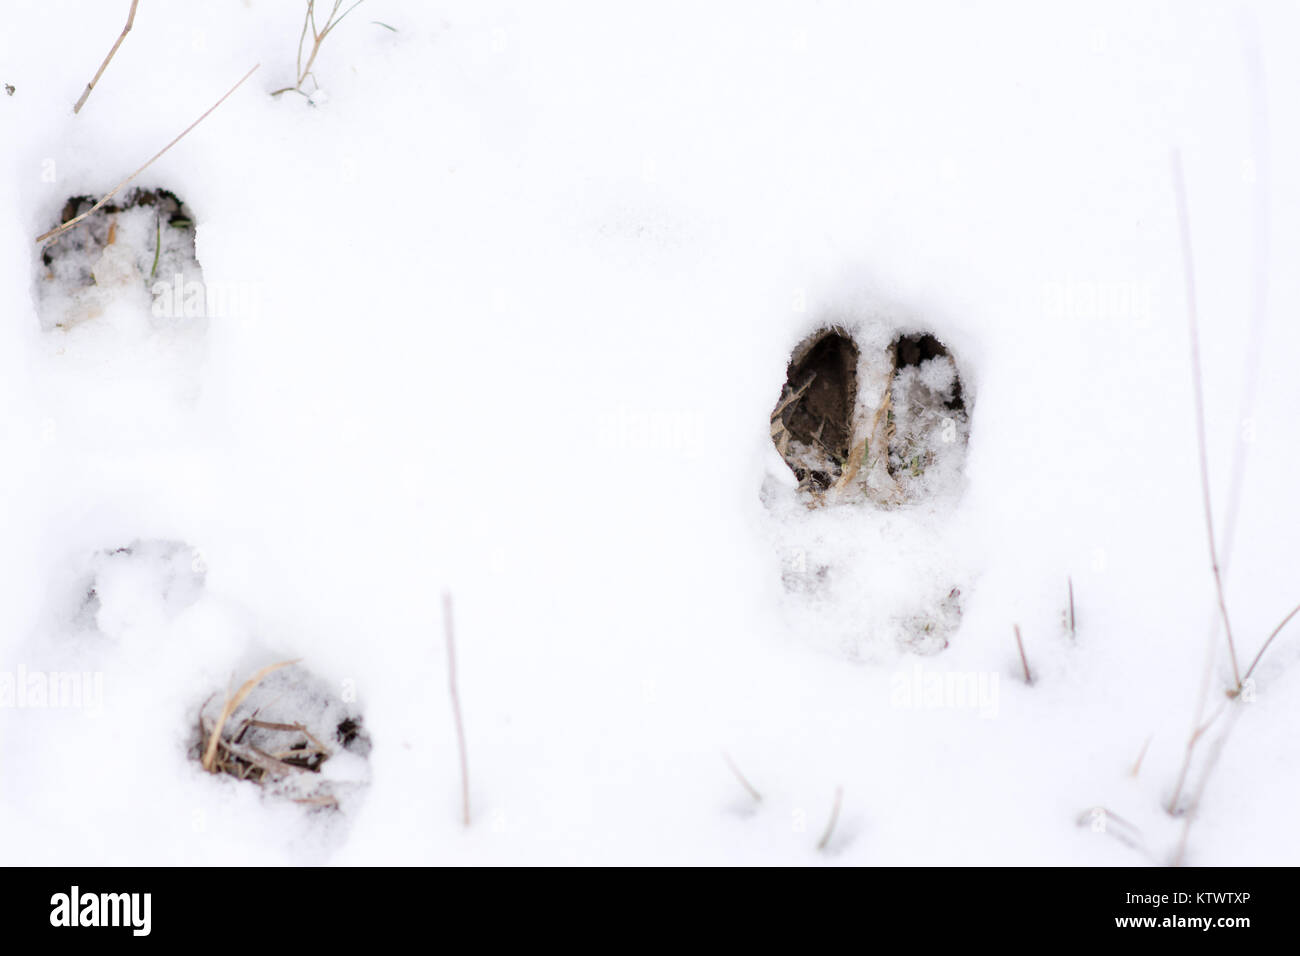 fresh whitetail deer tracks in the bright white snow. - Stock Image